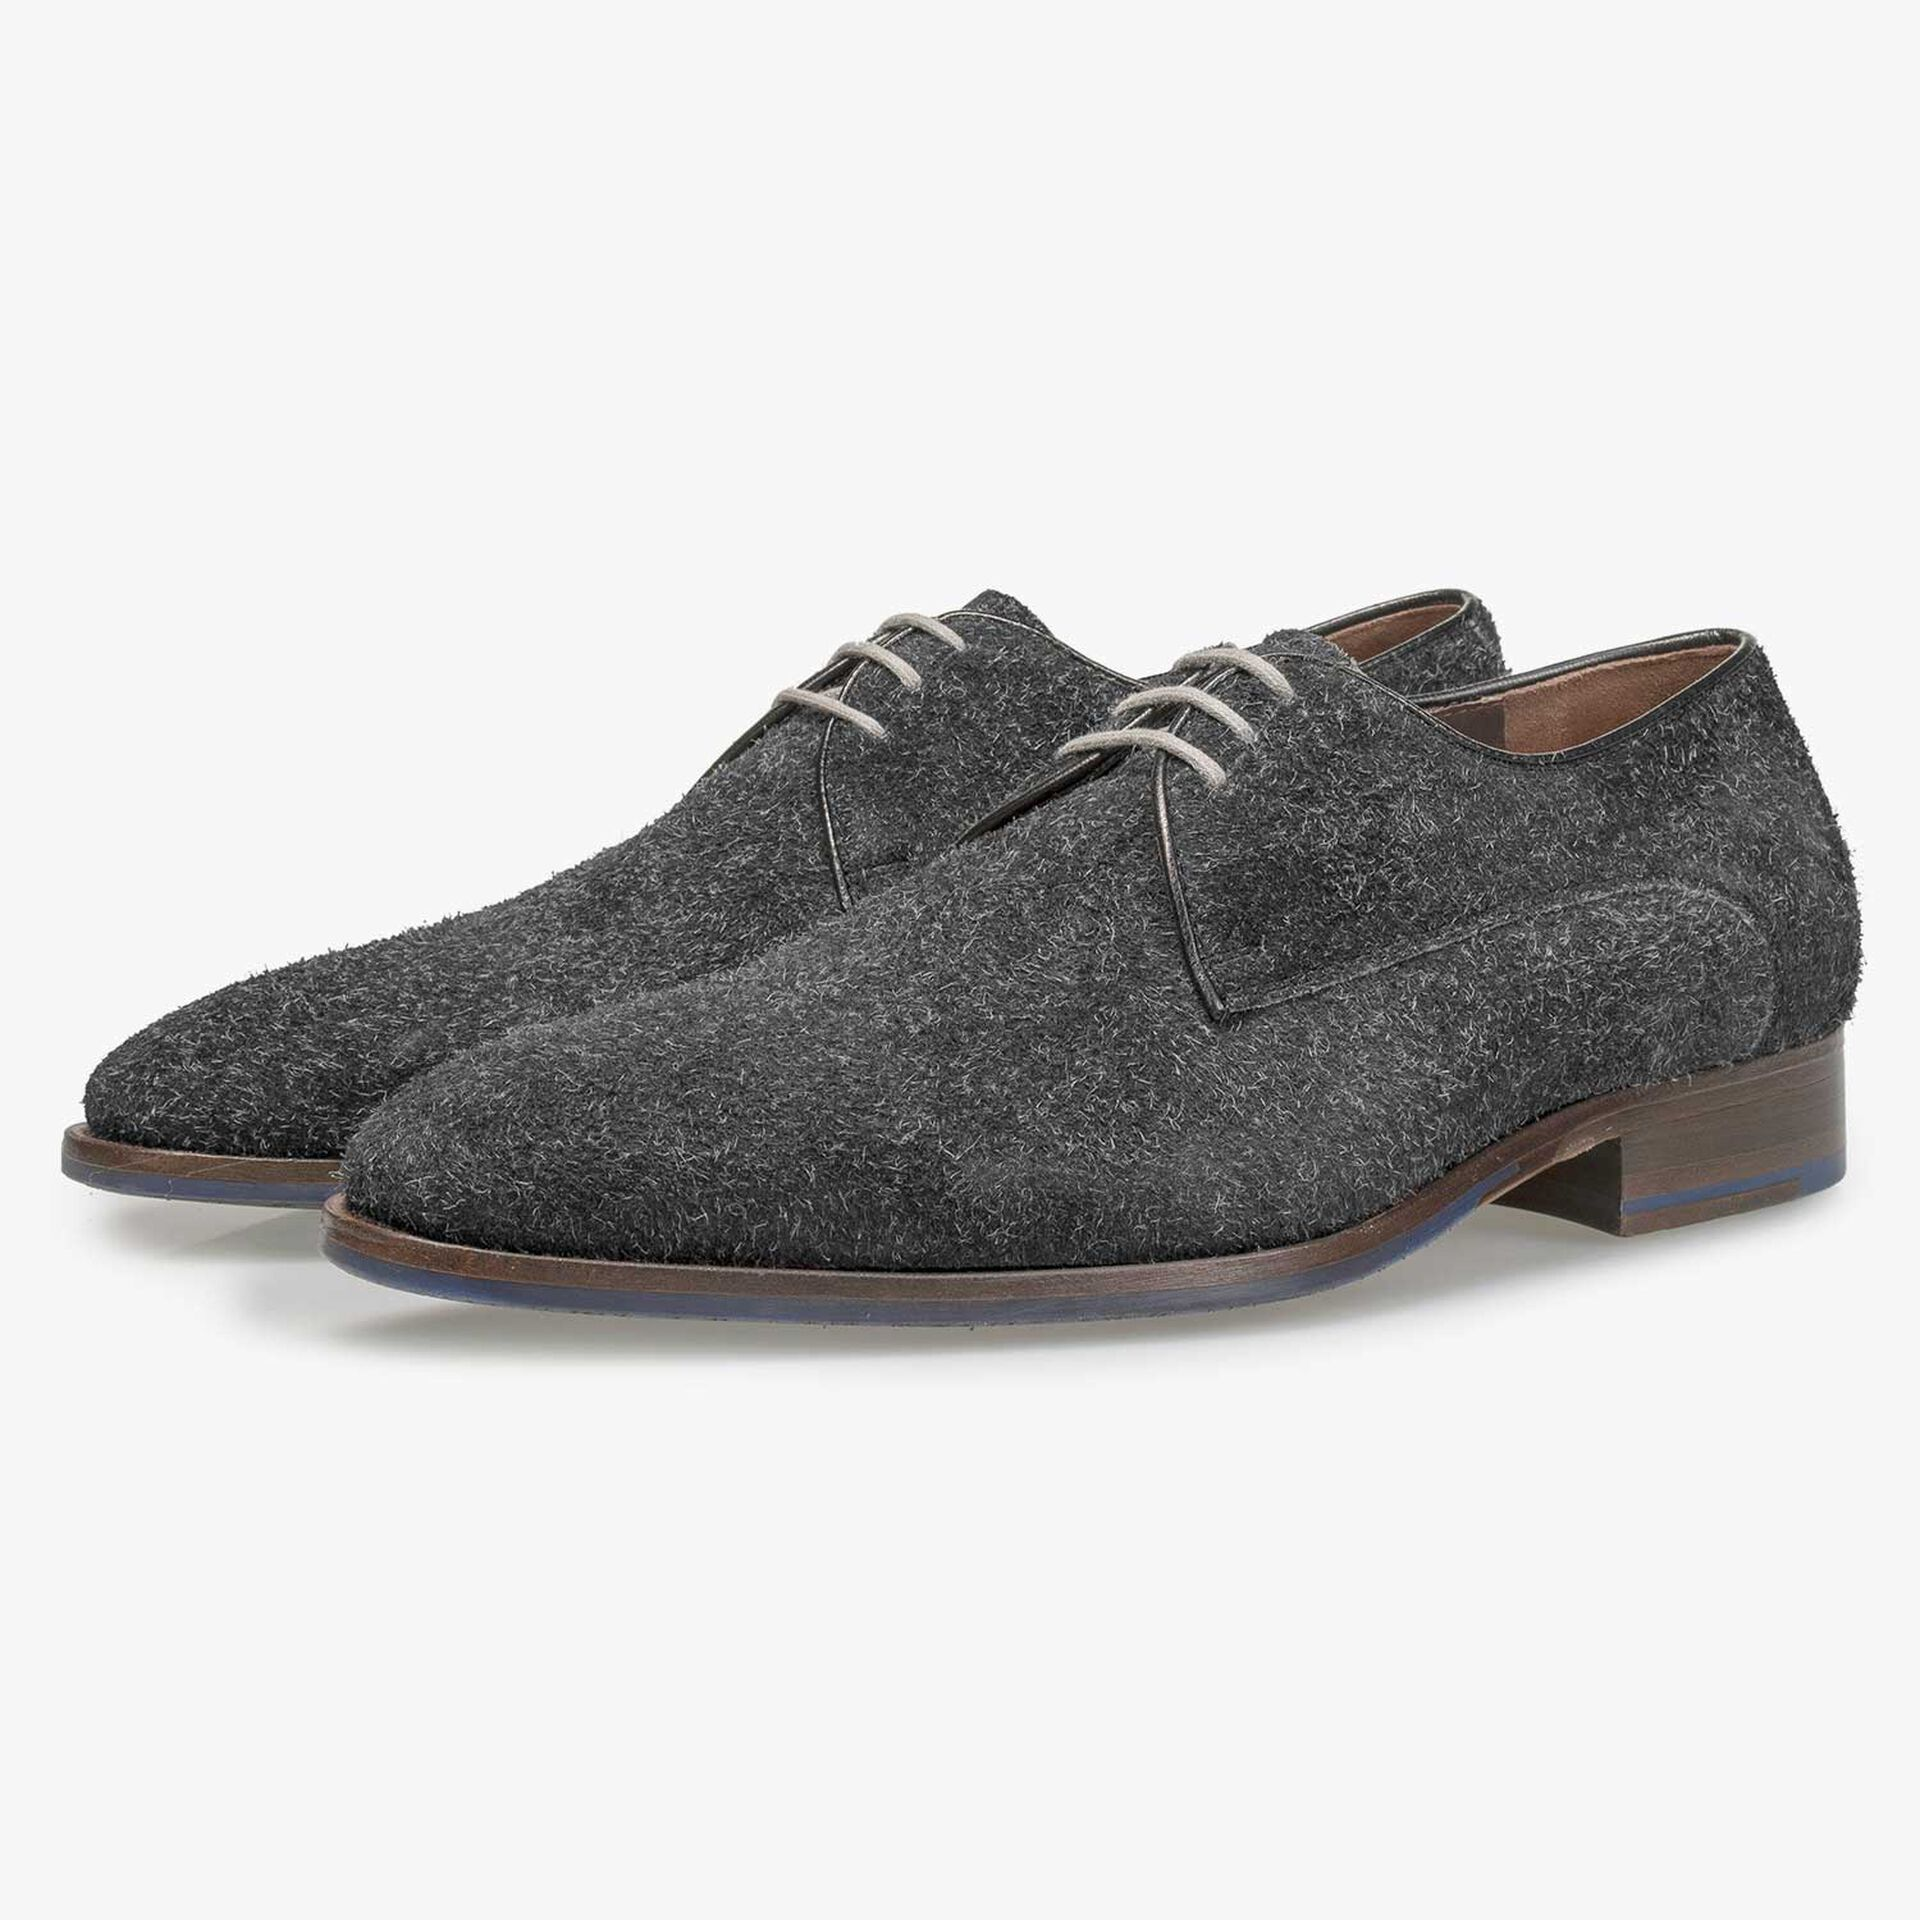 Grey lace shoe made of buffed leather